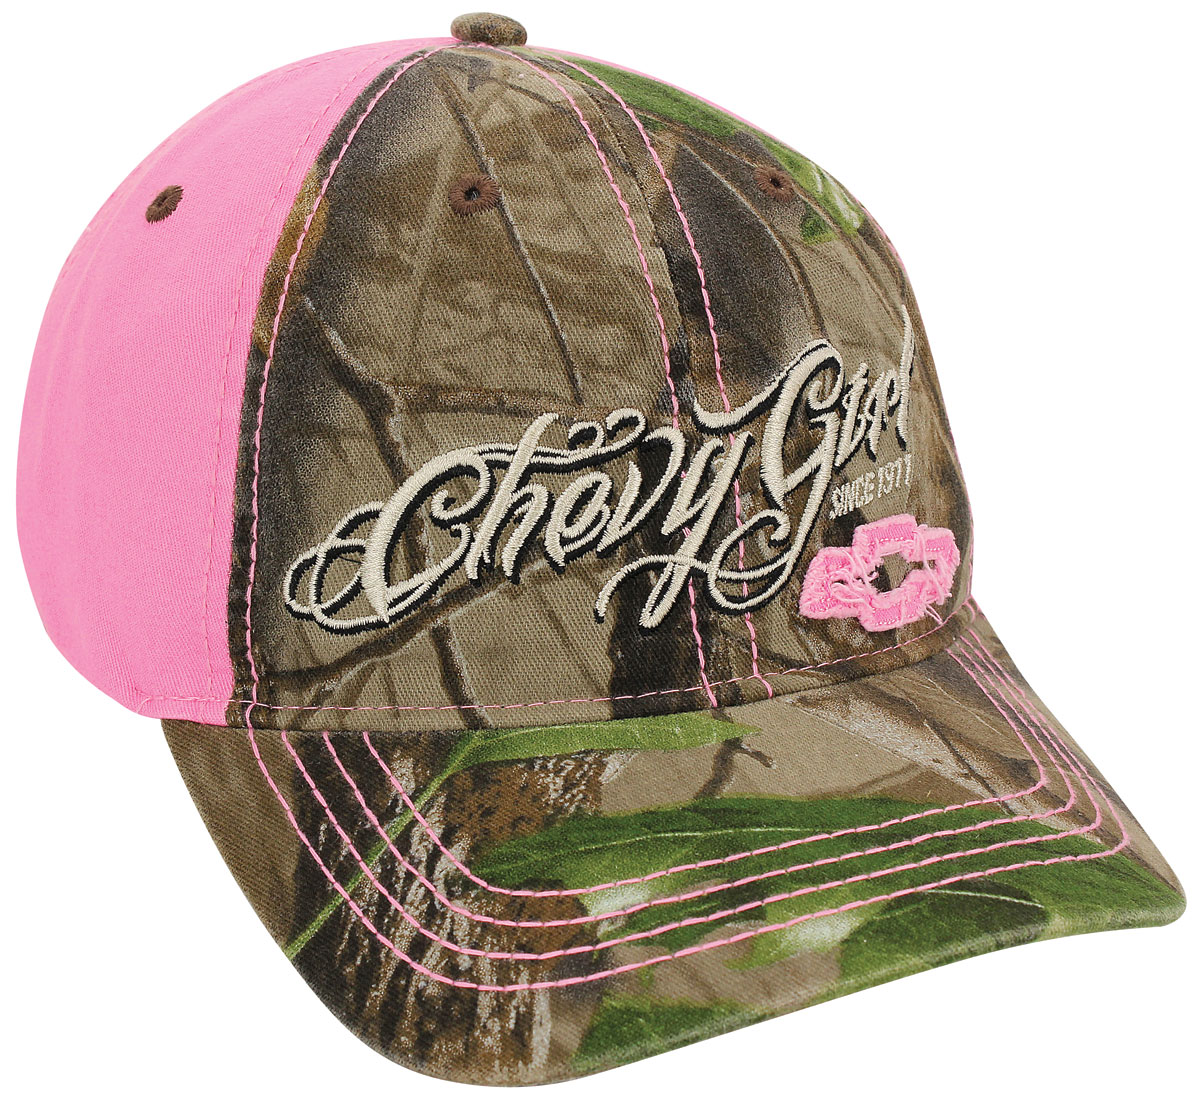 Hat, Chevy Girl Camouflage with Bowtie